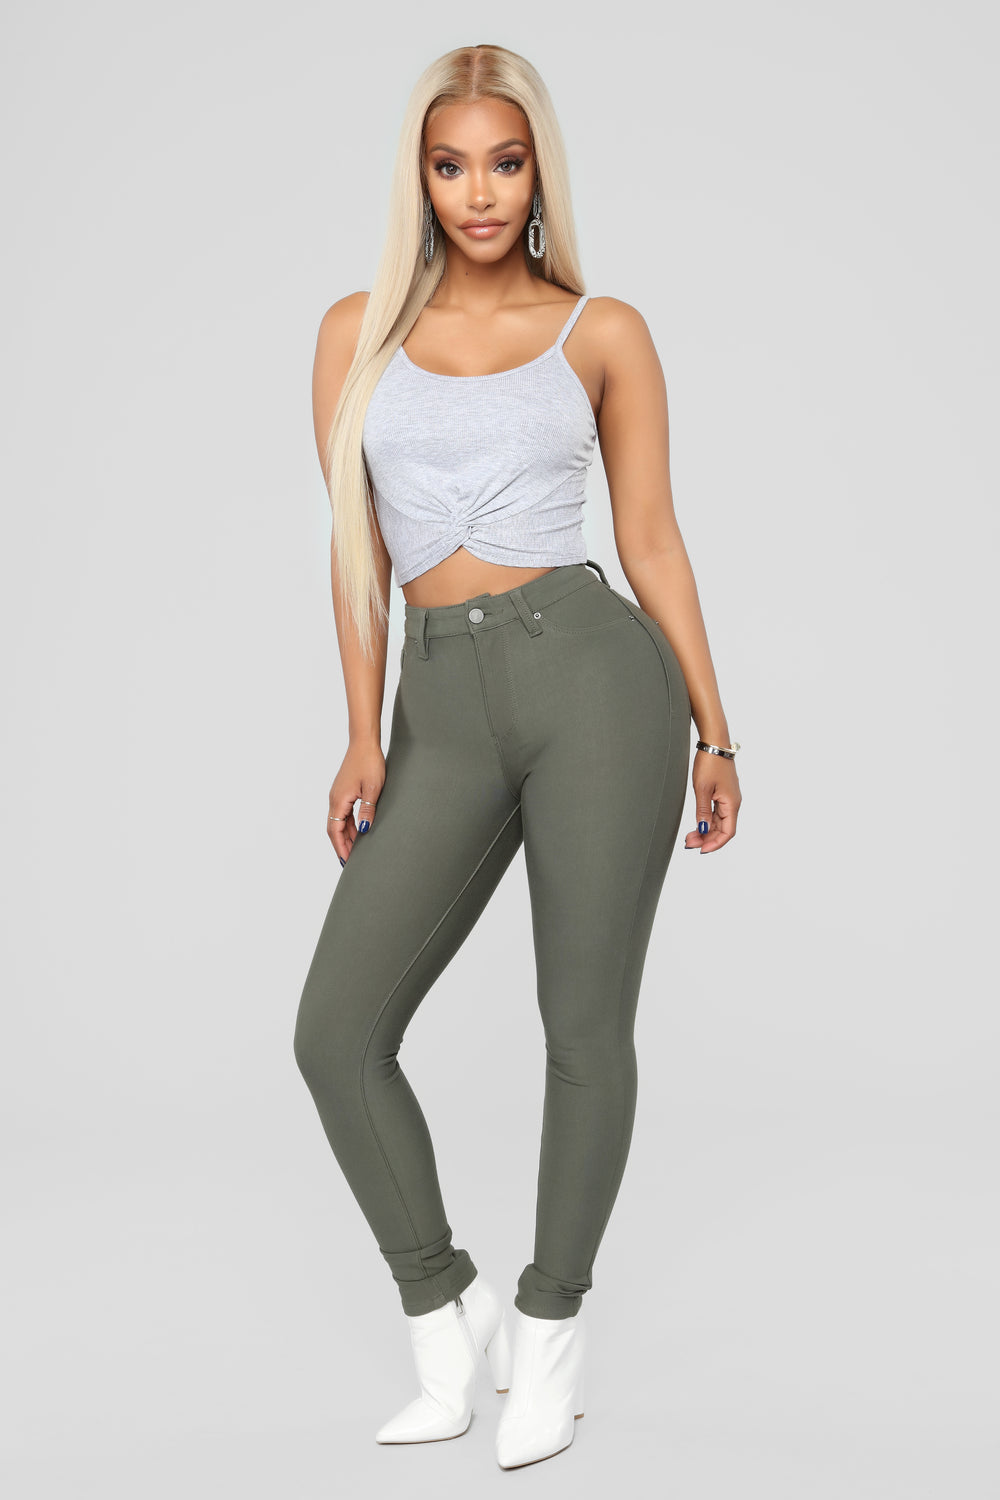 Callie Crop Top - Heather Grey